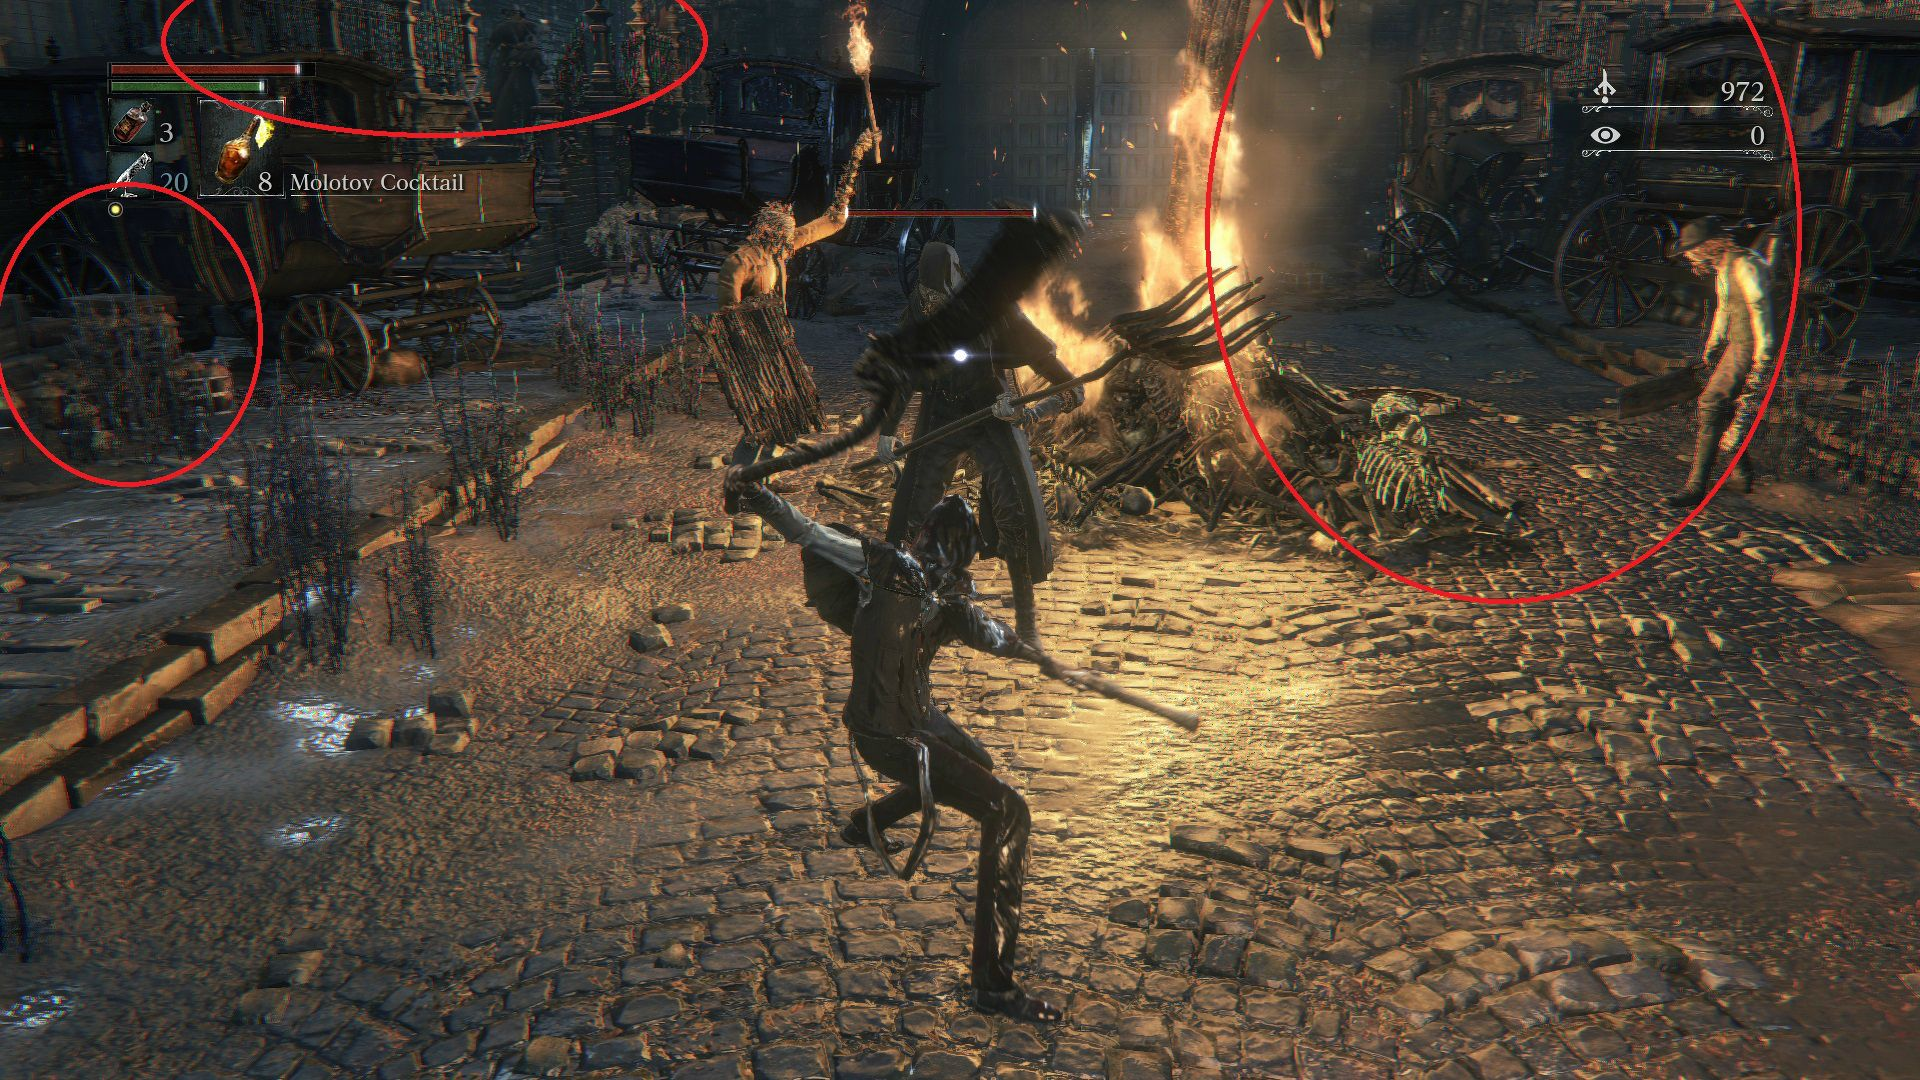 bloodborne matchmaking level difference Bloodborne co-op and summoning players guide explains how to get beckoning bell, resonating bell, and how to collect insight.